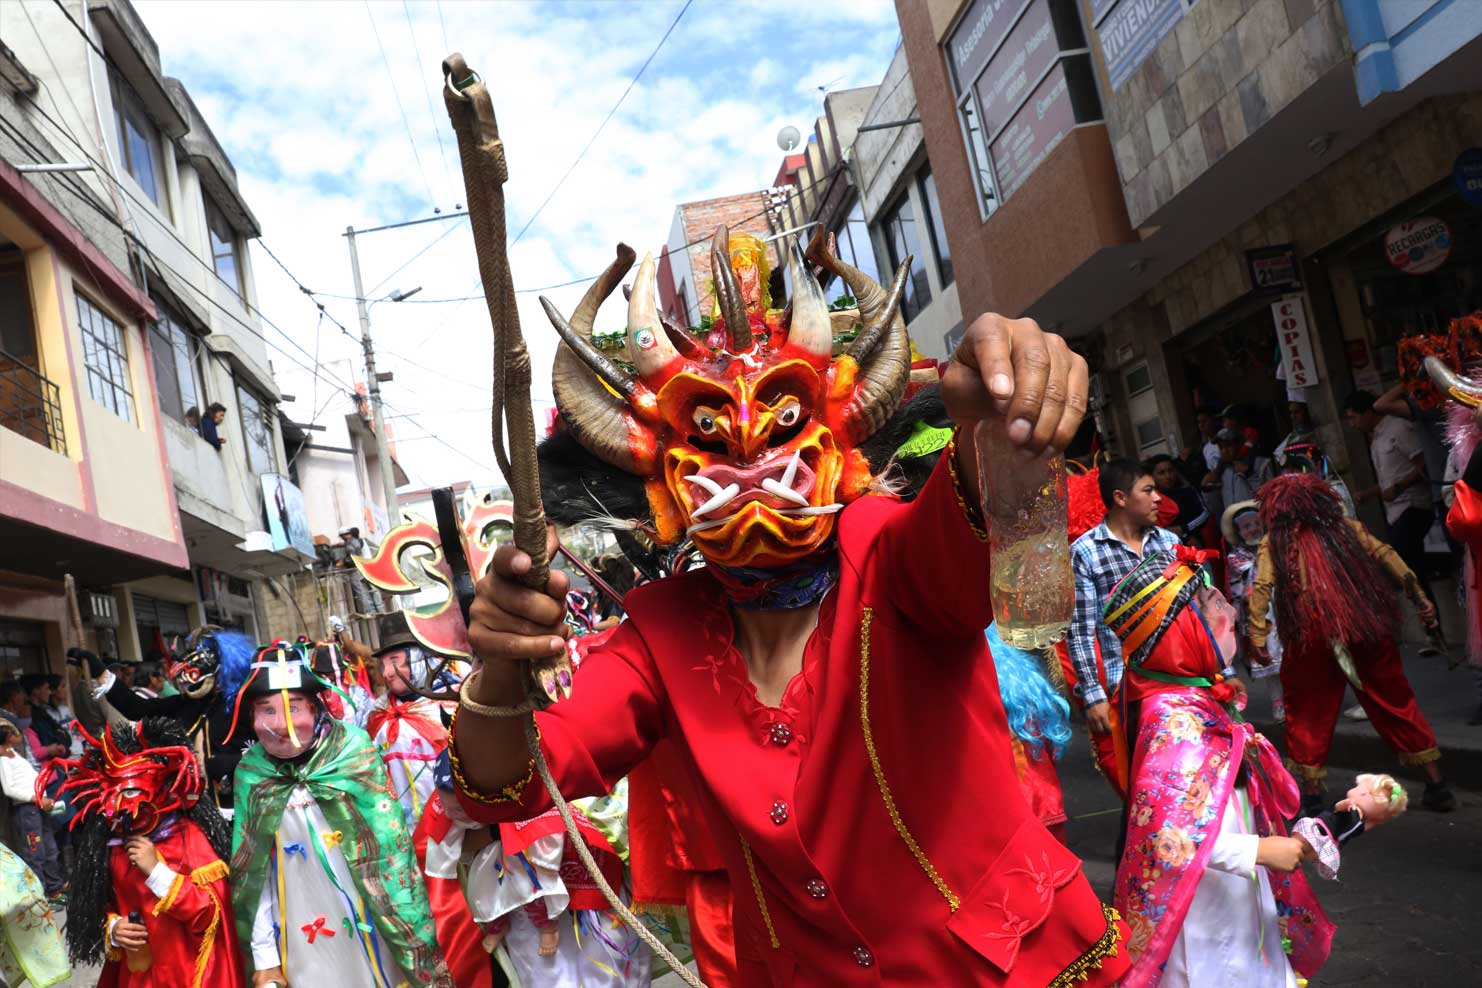 018-La-Diablada-de-Pillaro-(The-Devils-of-Pillaro)